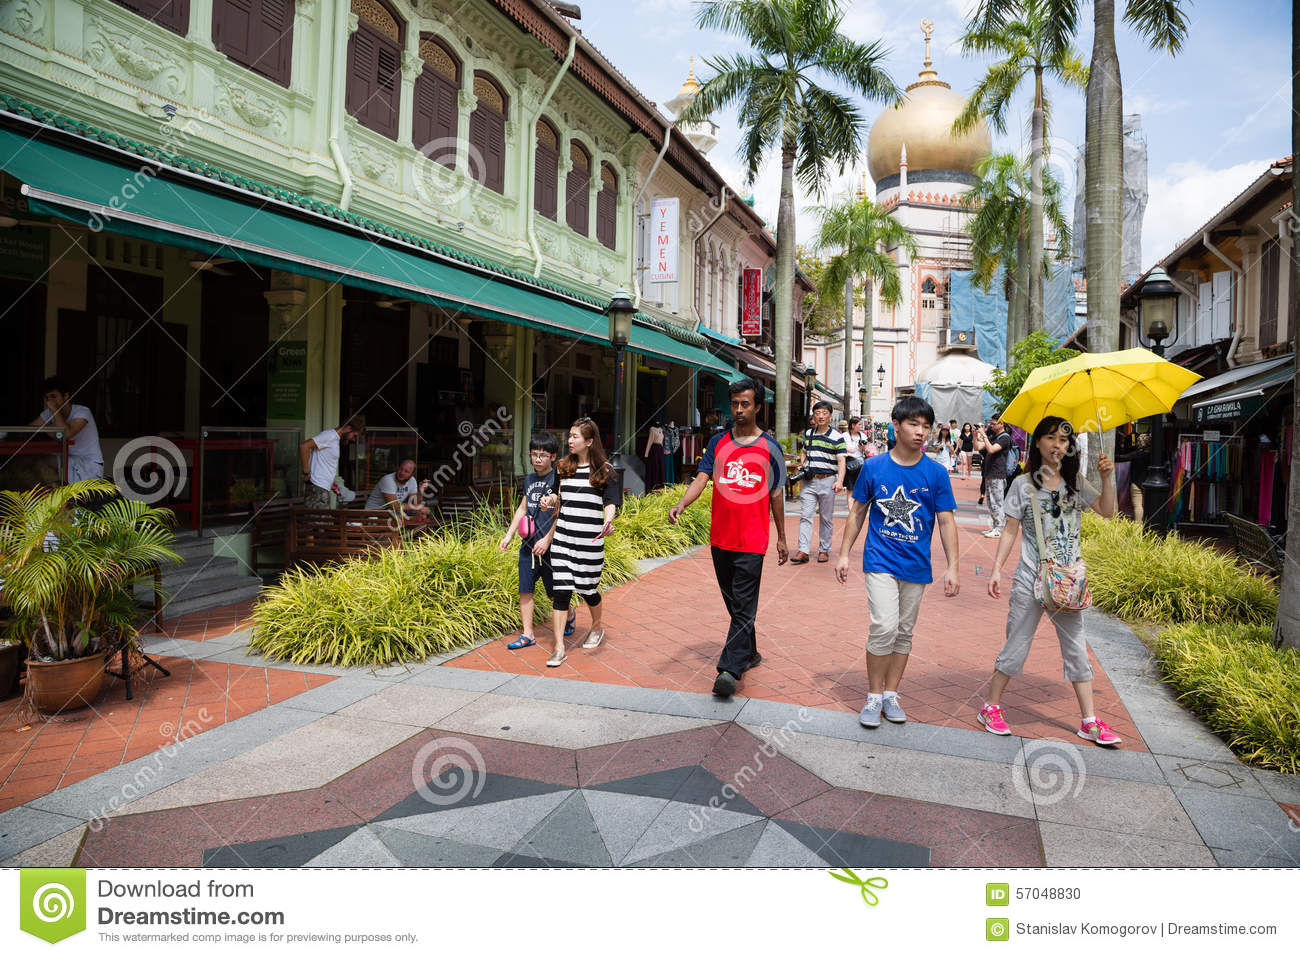 People in the Kampong Glam, Singapore